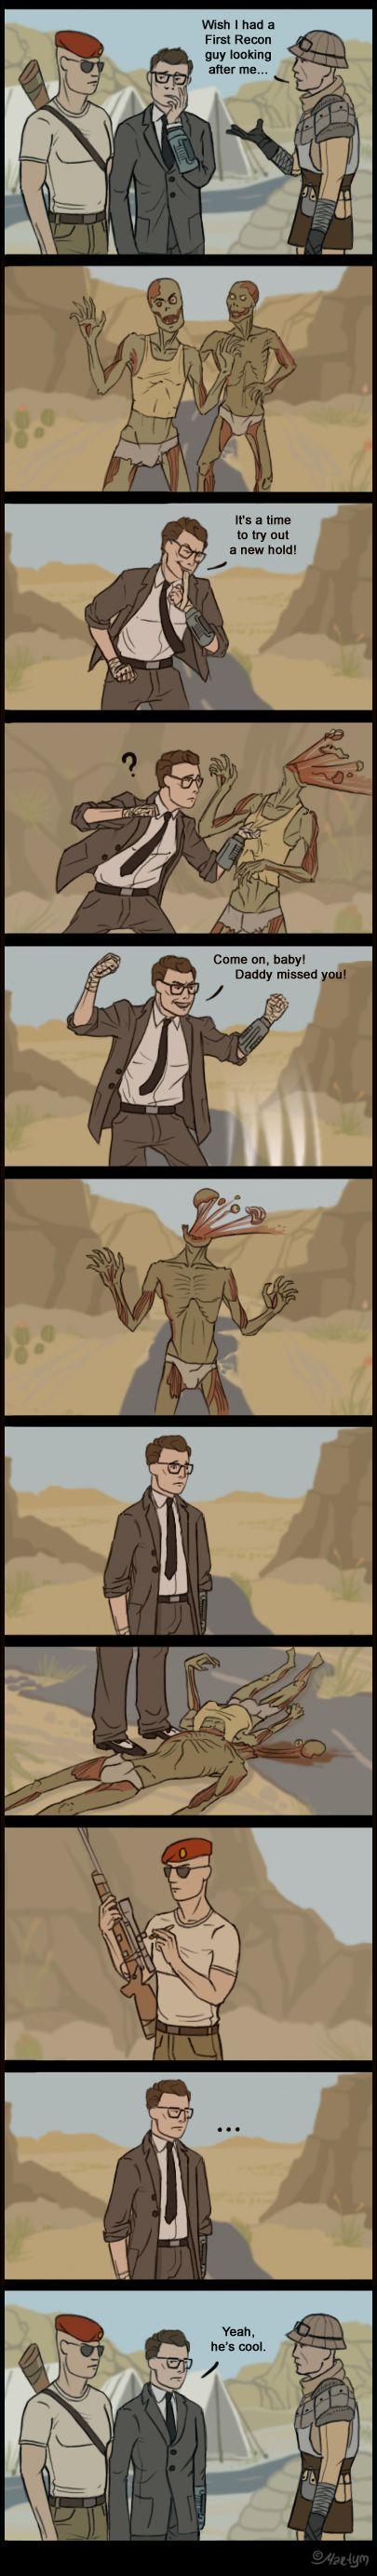 Fallout New Vegas - Boone by martym.deviantart.com on @deviantART -it's funny cause it's true, being a melee person myself.